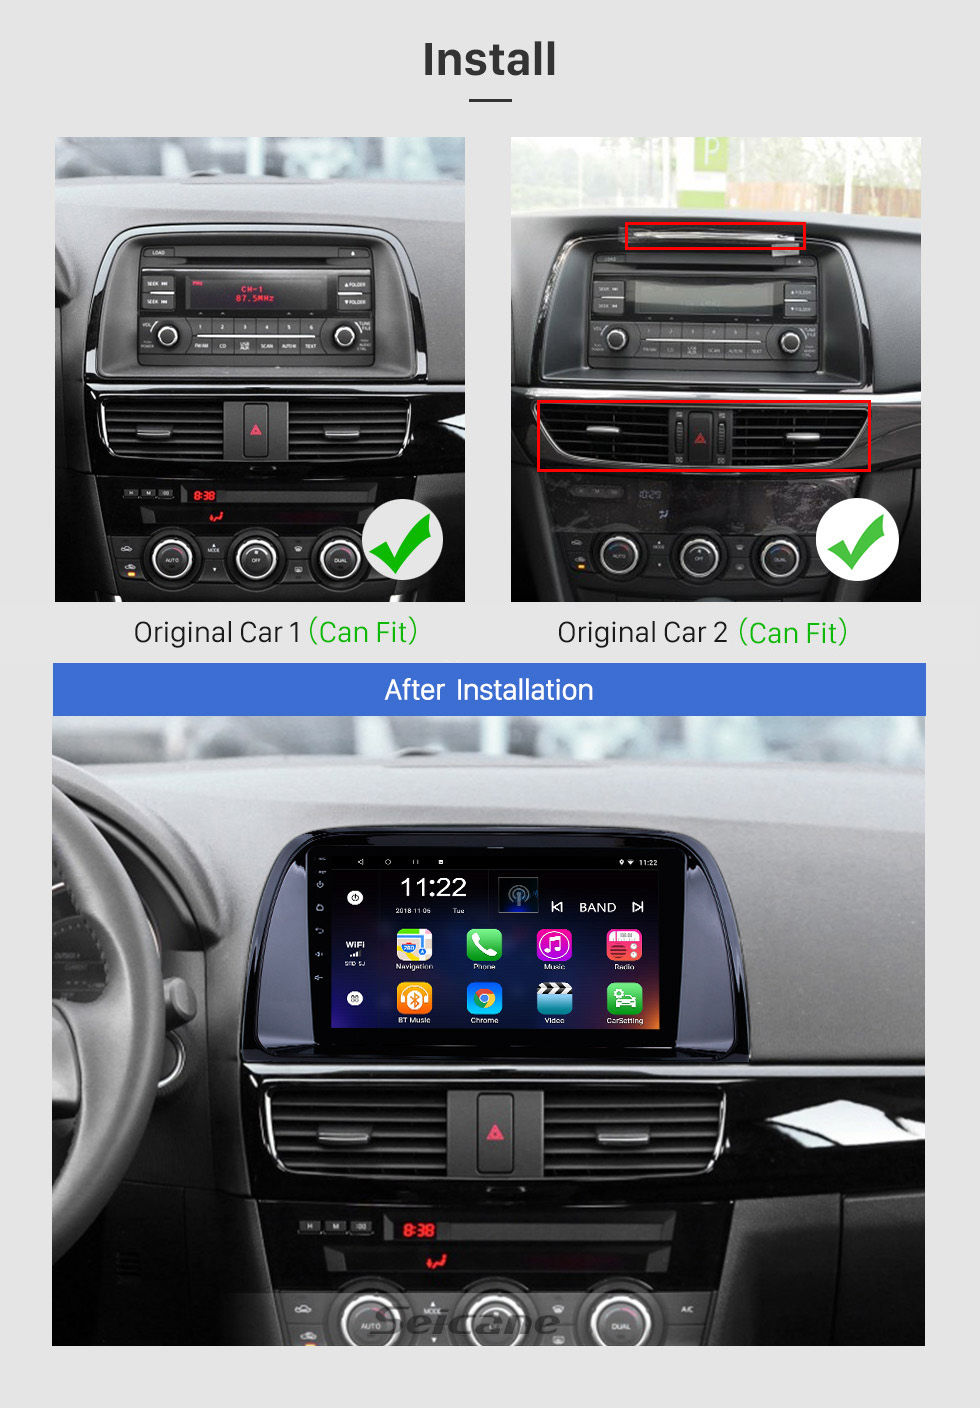 Seicane Android 10.0 9 inch 2012-2015 Mazda CX-5 HD Touchscreen GPS Navigation Radio with WIFI Bluetooth Music USB support Carplay OBD2 AUX Backup Camera